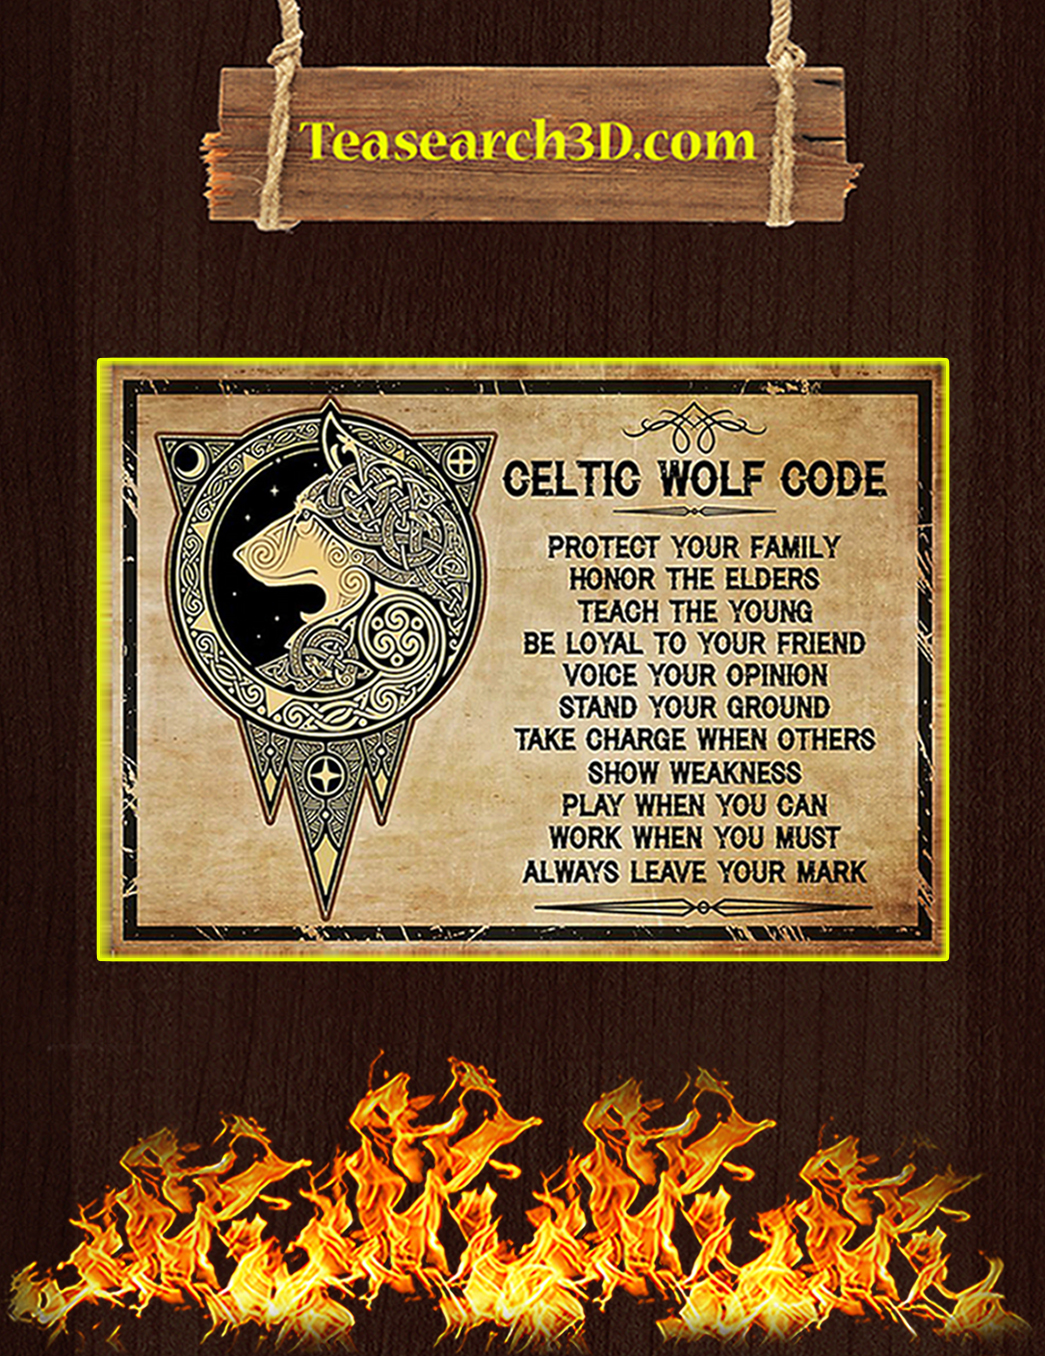 Celtic wolf code poster A1